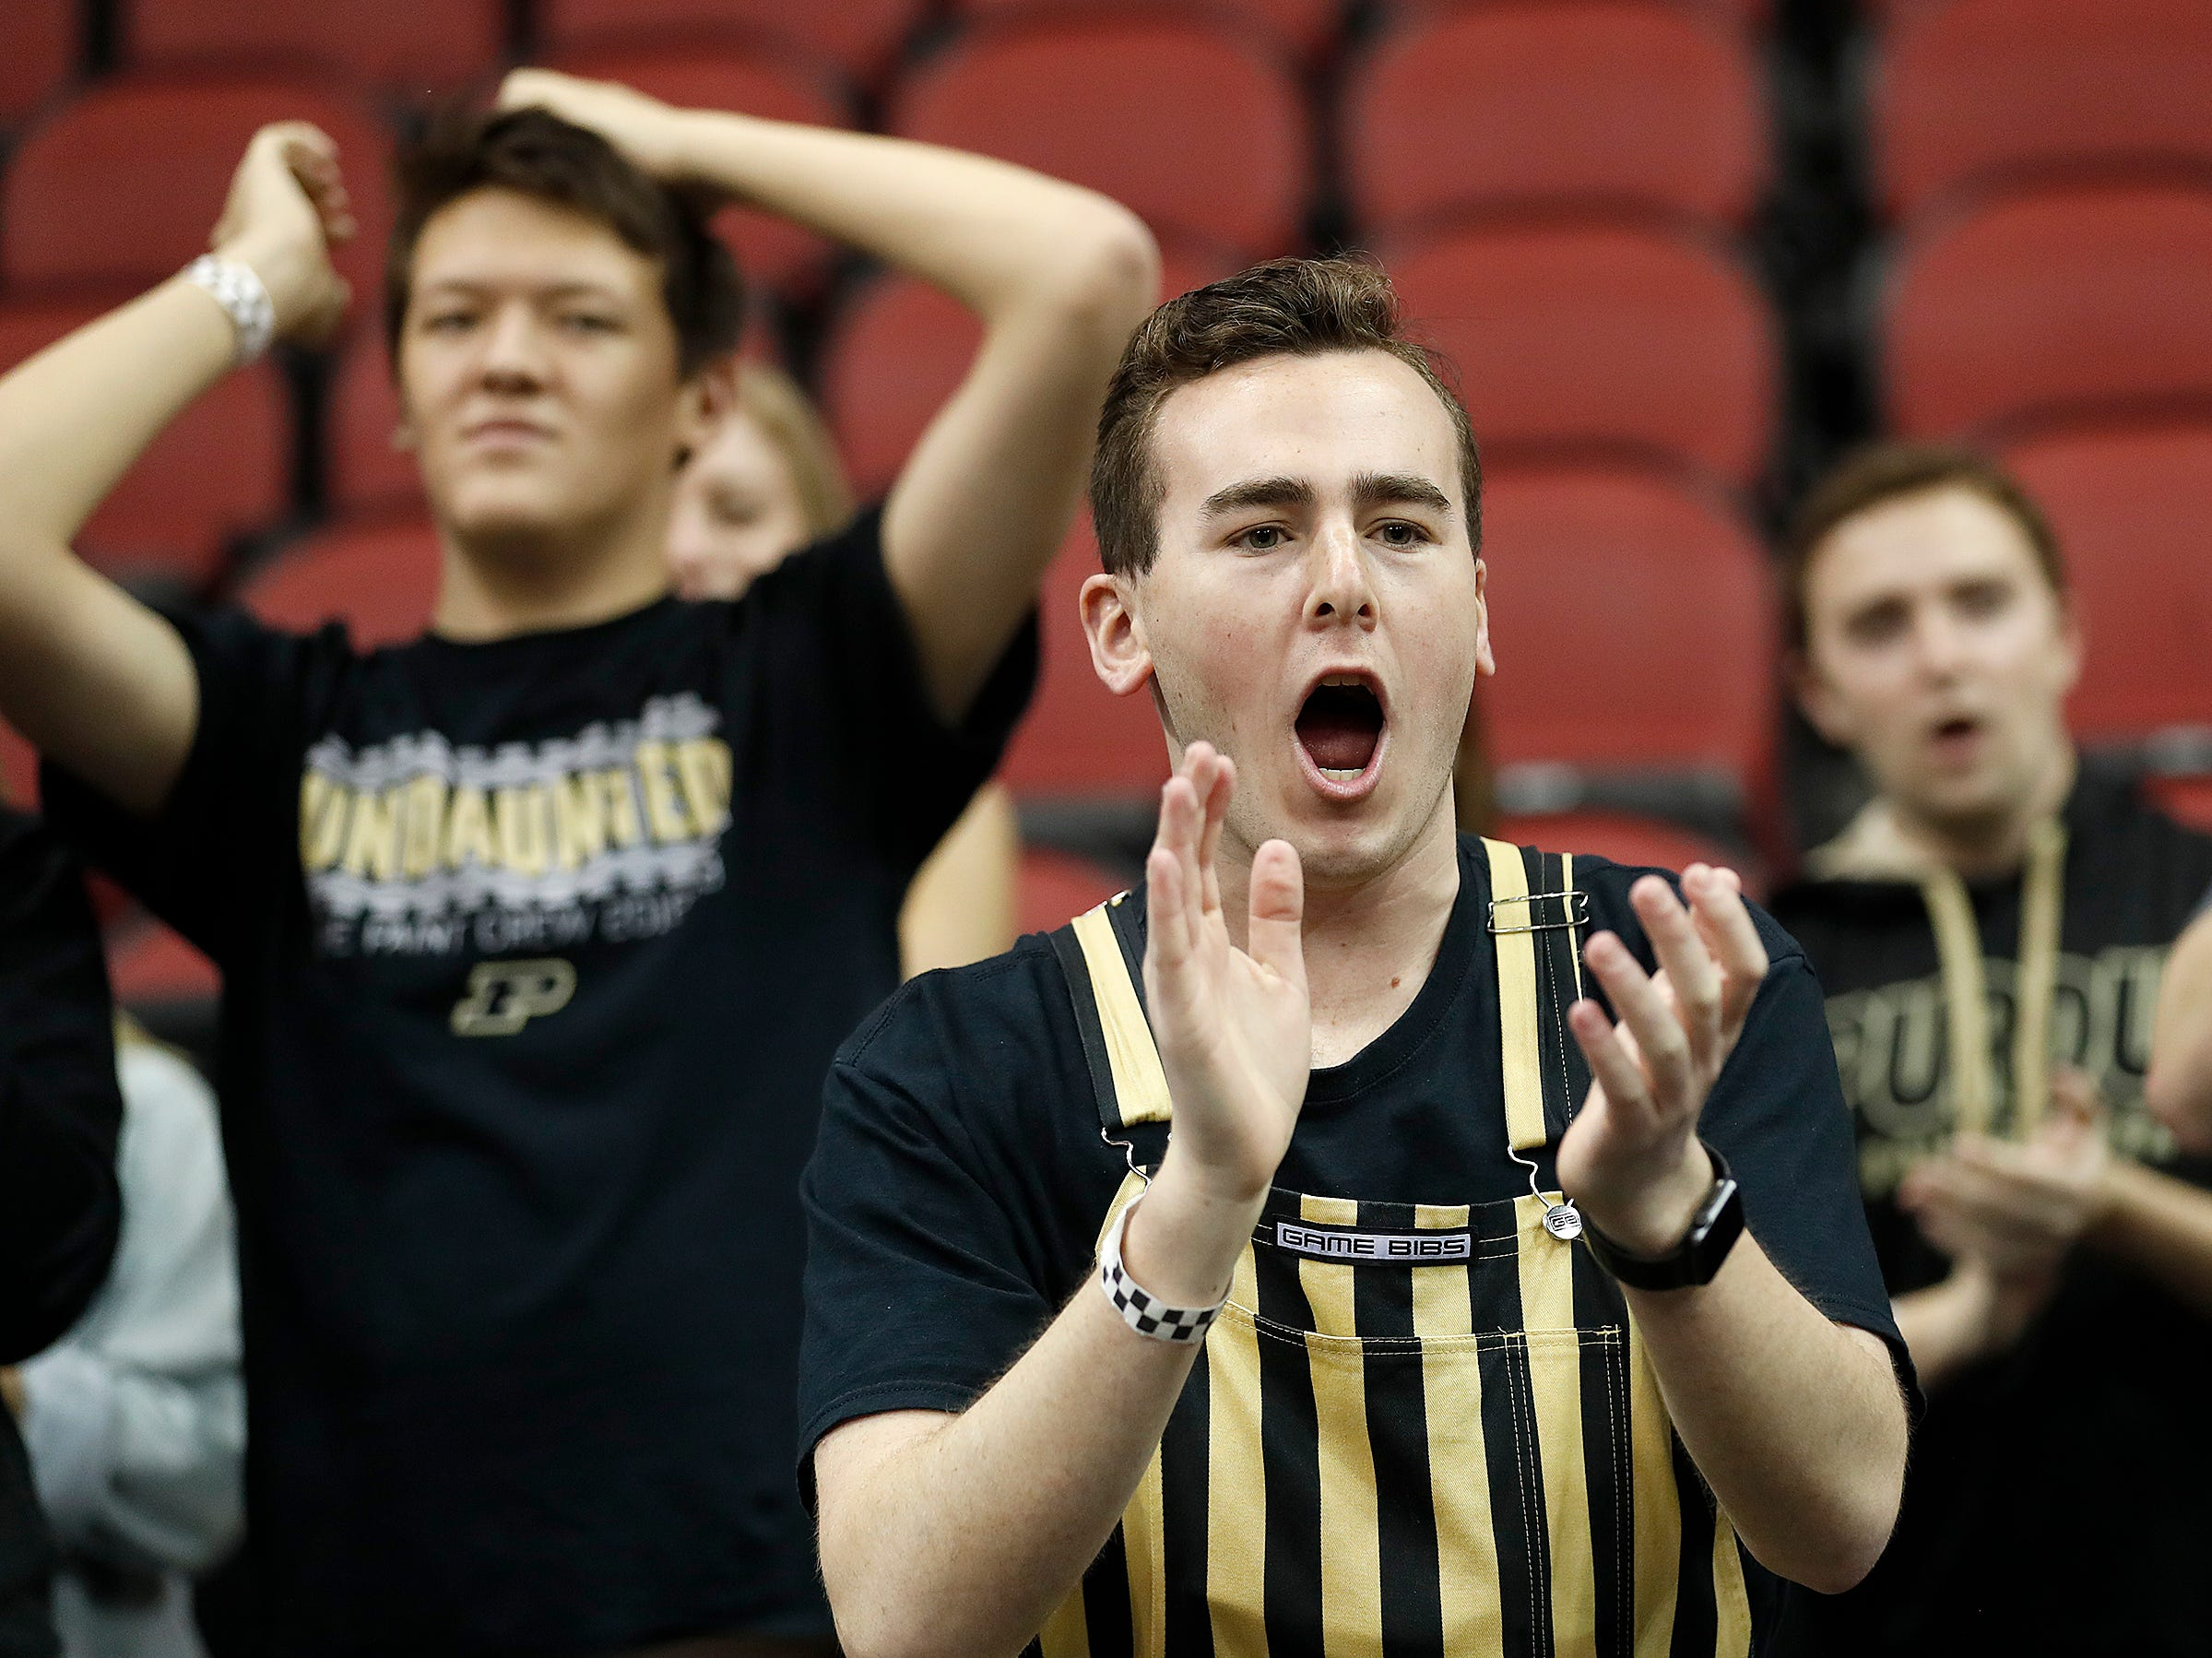 "Purdue Boilermakers fans cheer on their team as they warm up for the NCAA Division I Basketball Championship ""Elite 8"" basketball game at the KFC Yum! Center in Louisville, KY., on Saturday, Mar 30, 2019."